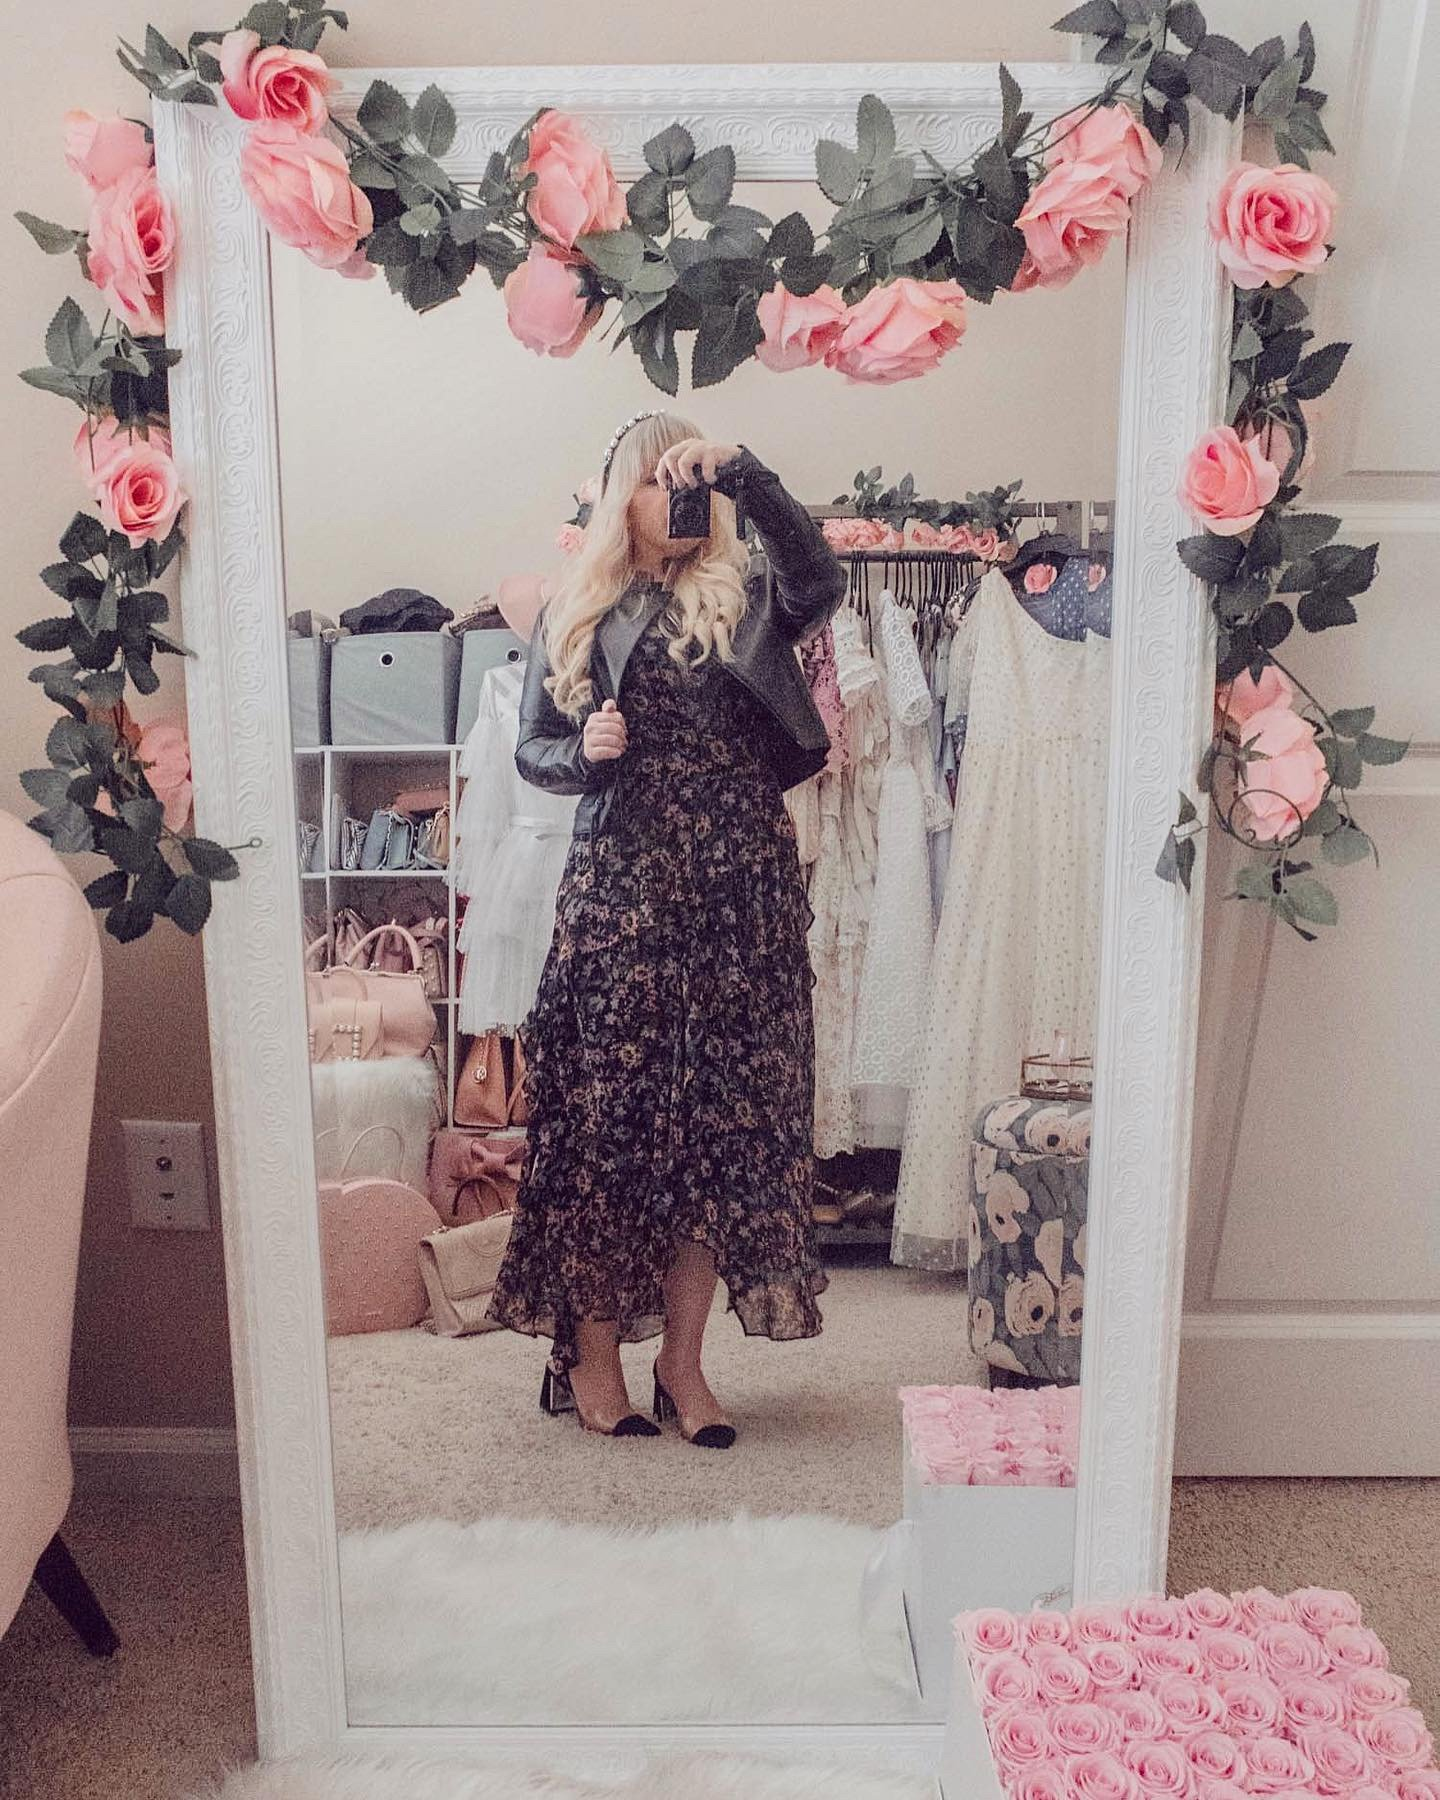 Elizabeth Hugen from Lizzie of Lace shares tips on how to look feminine and edgy